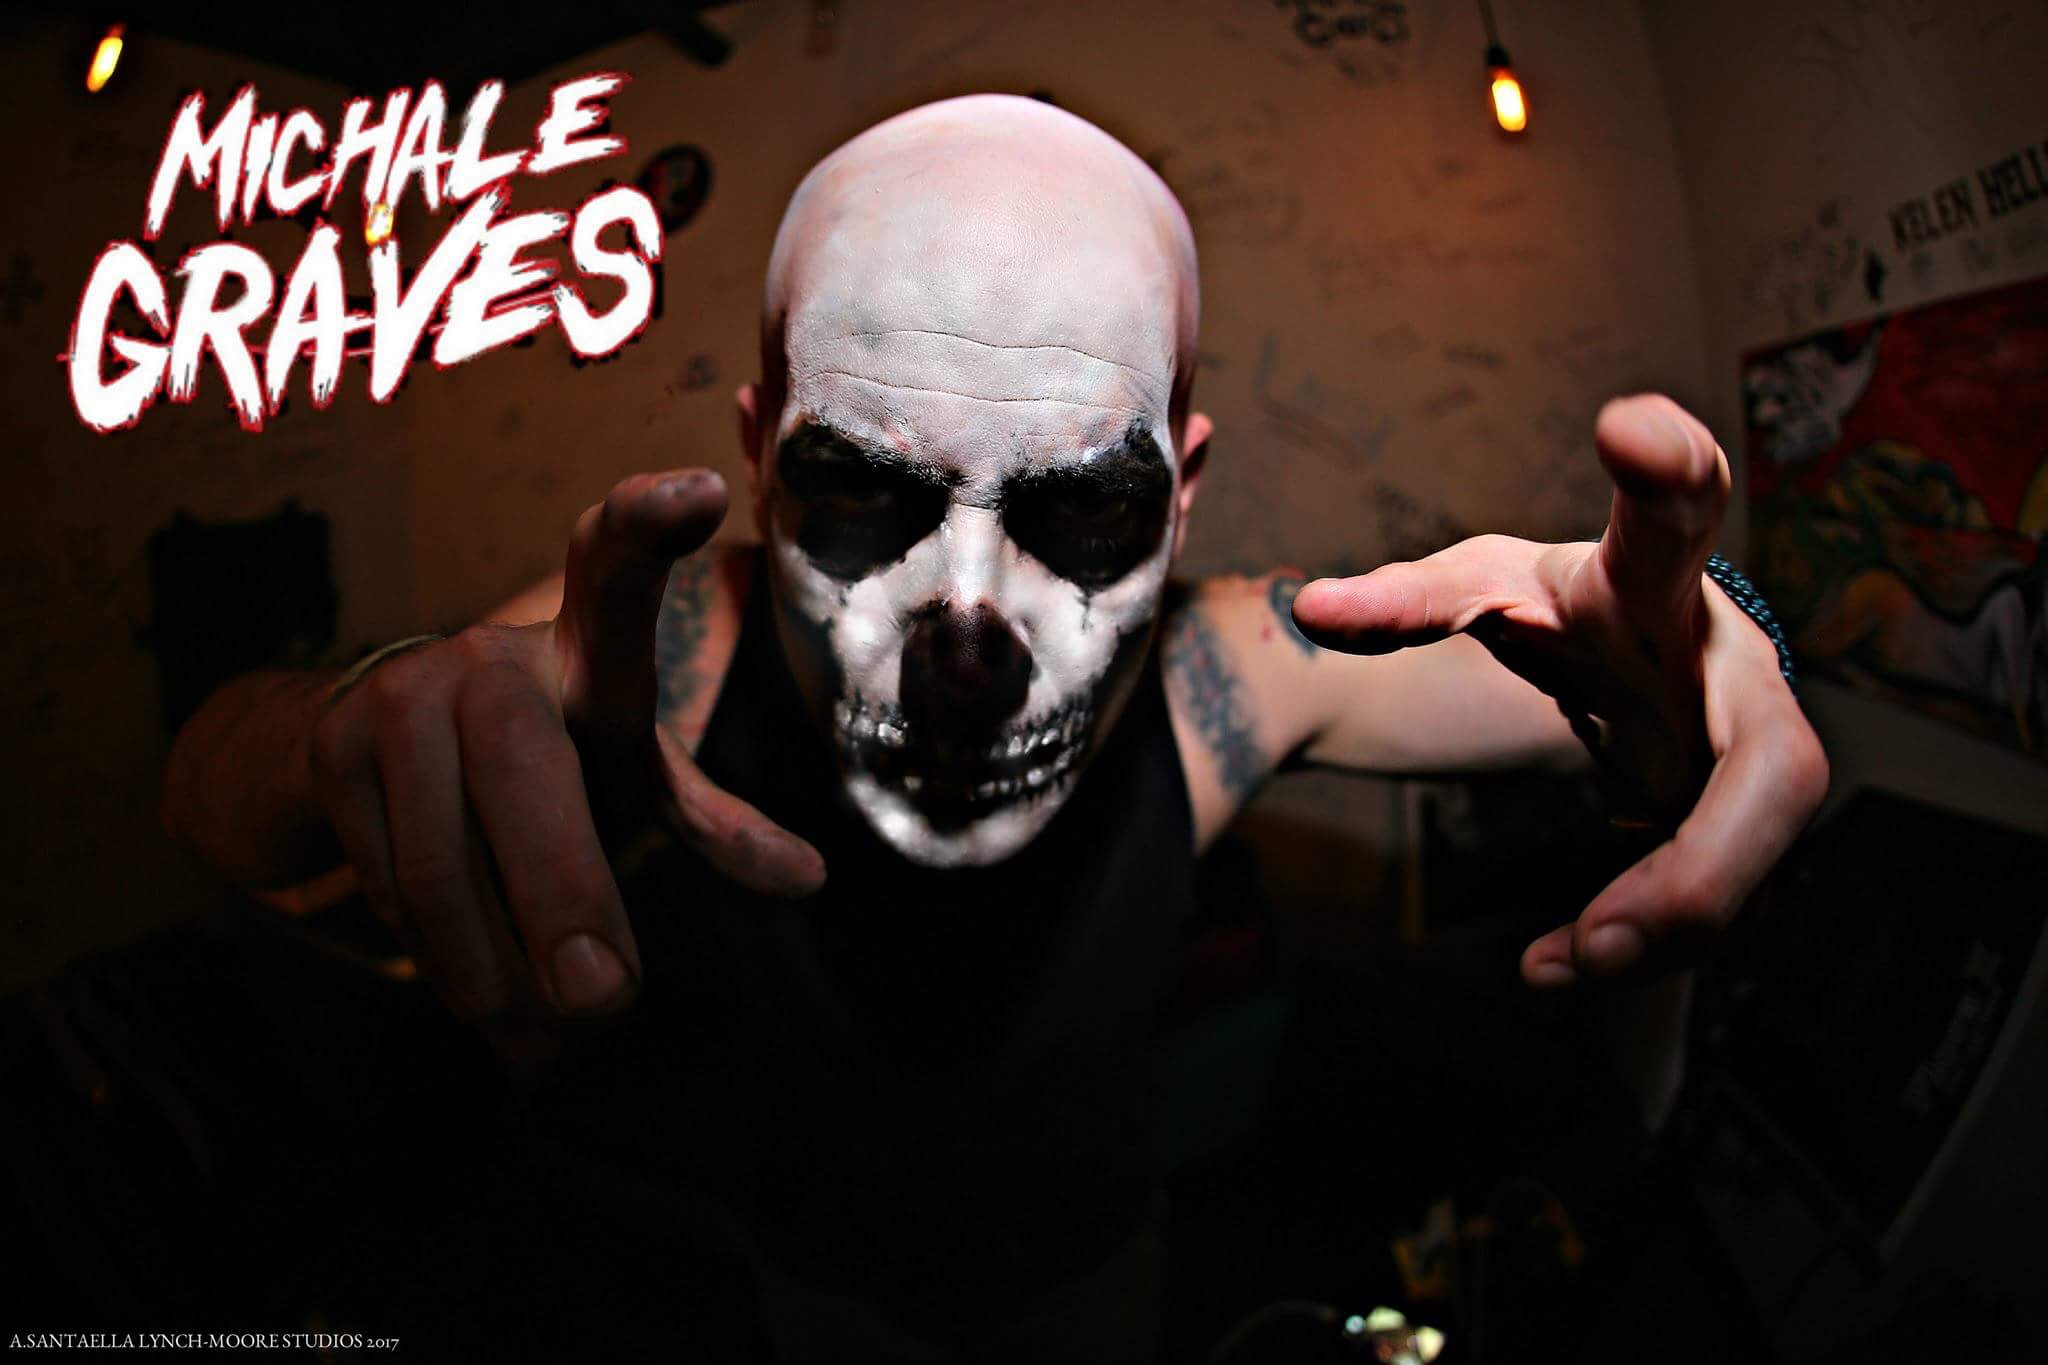 ENTER TO WIN 2 MICHALE GRAVE TICKETS ON HALLOWEEN NIGHT!